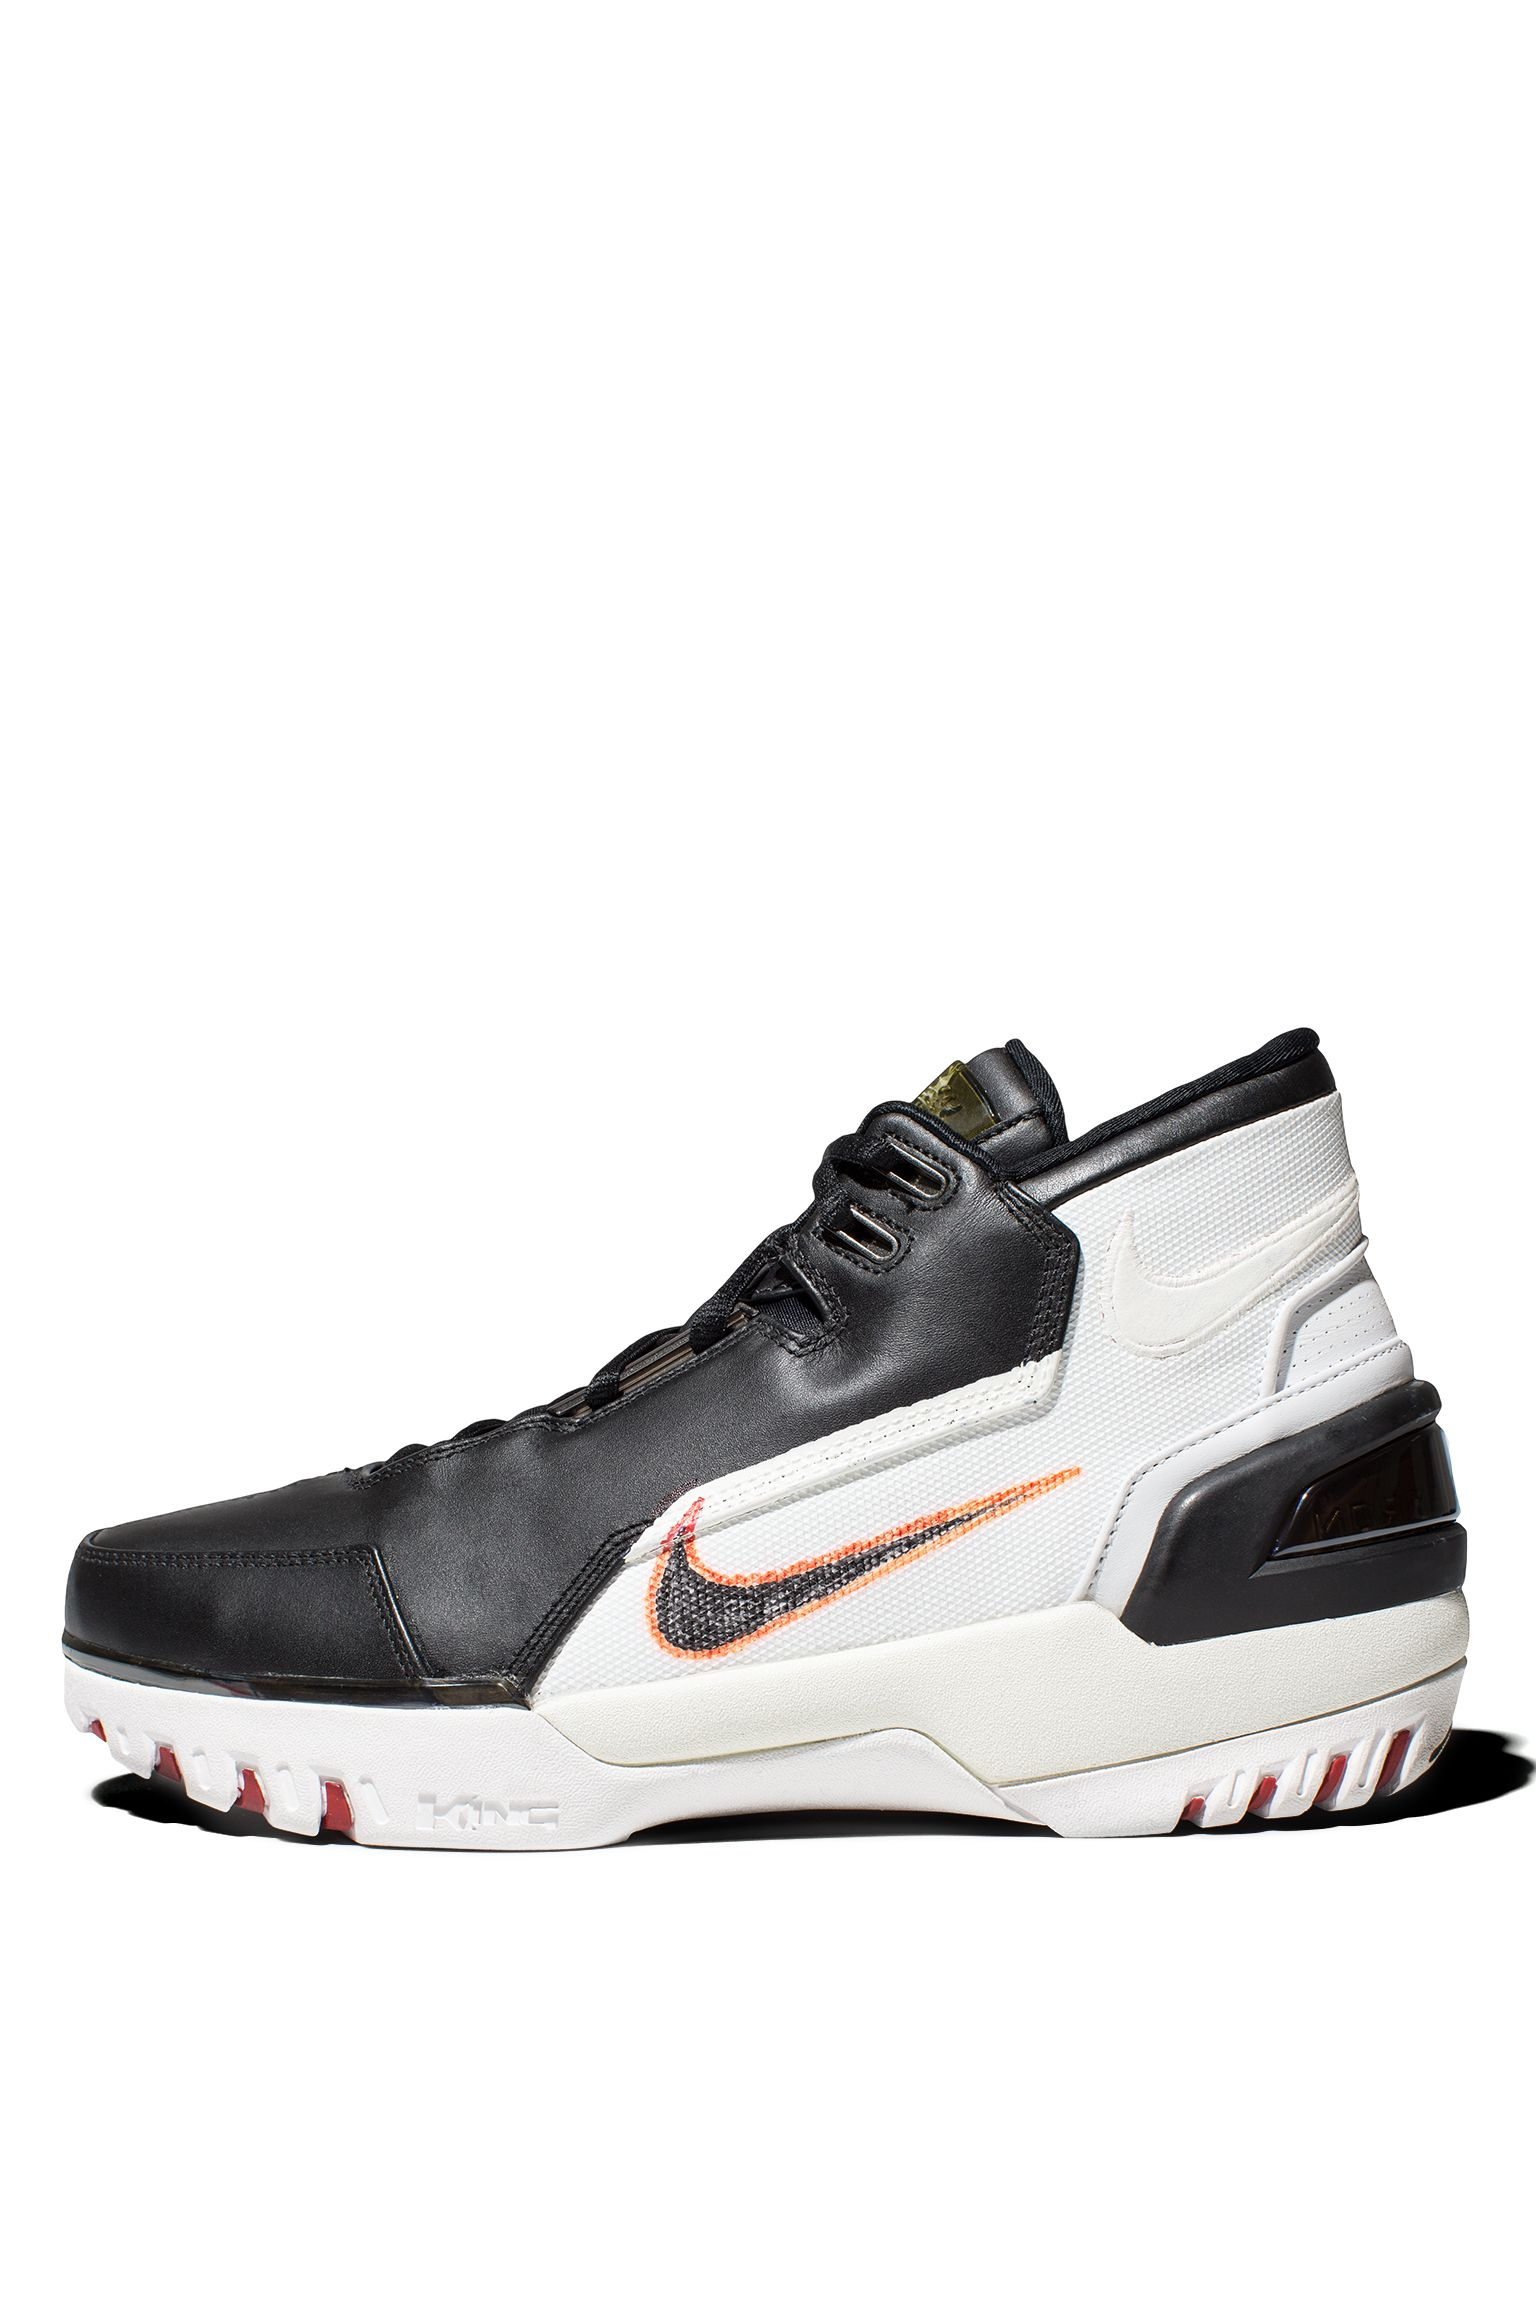 Mehr zum Design: Nike Air Zoom Generation